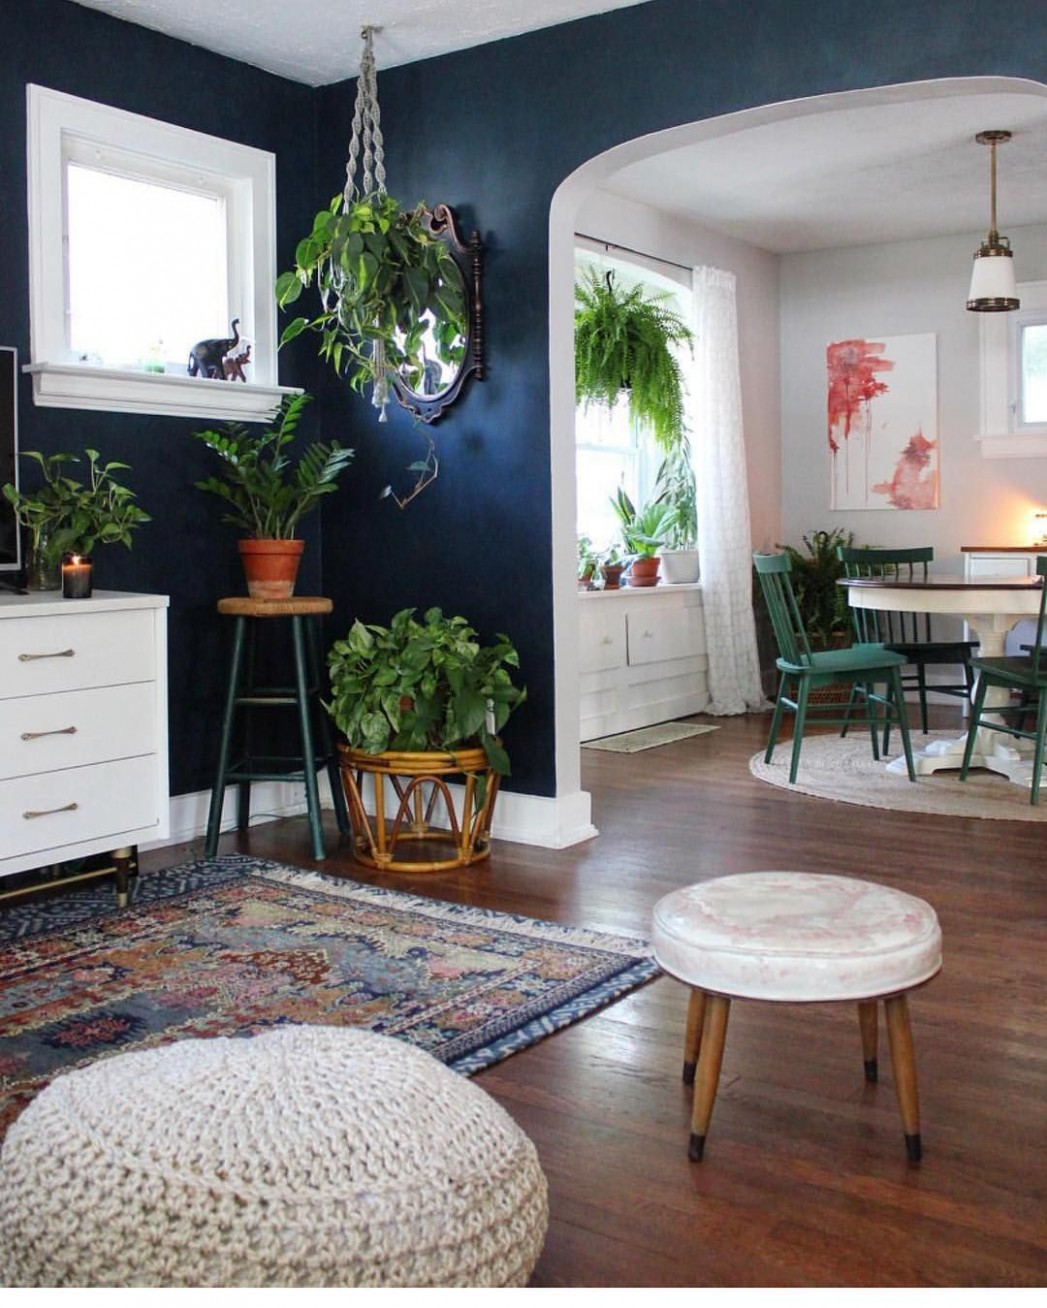 Retro Dining Rooms: Take a look at this dazzling dining room  - Dining Room Ideas With Plants